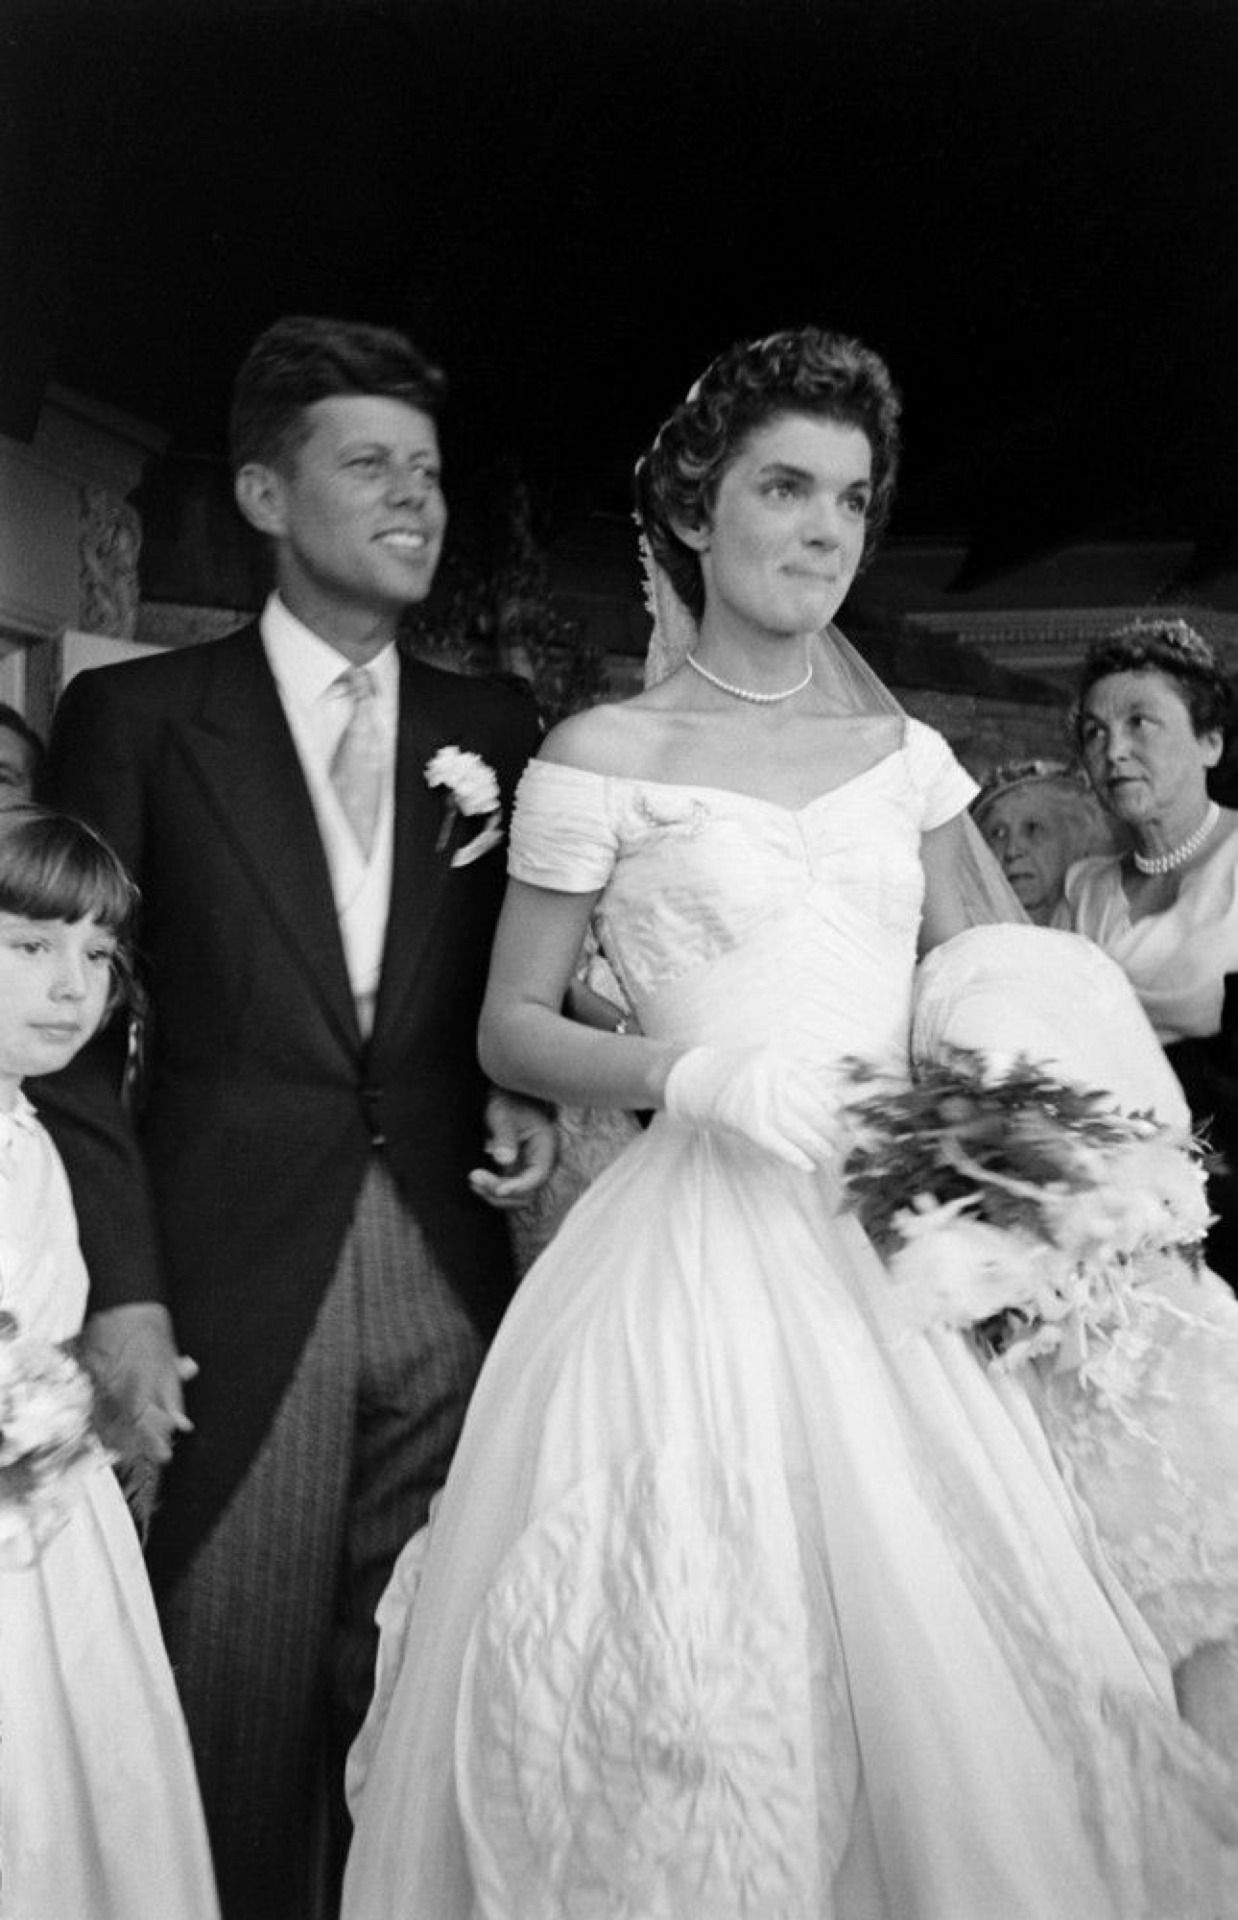 Pin by Annie Jurkovich on The Kennedys x8 | Pinterest | Jackie ...